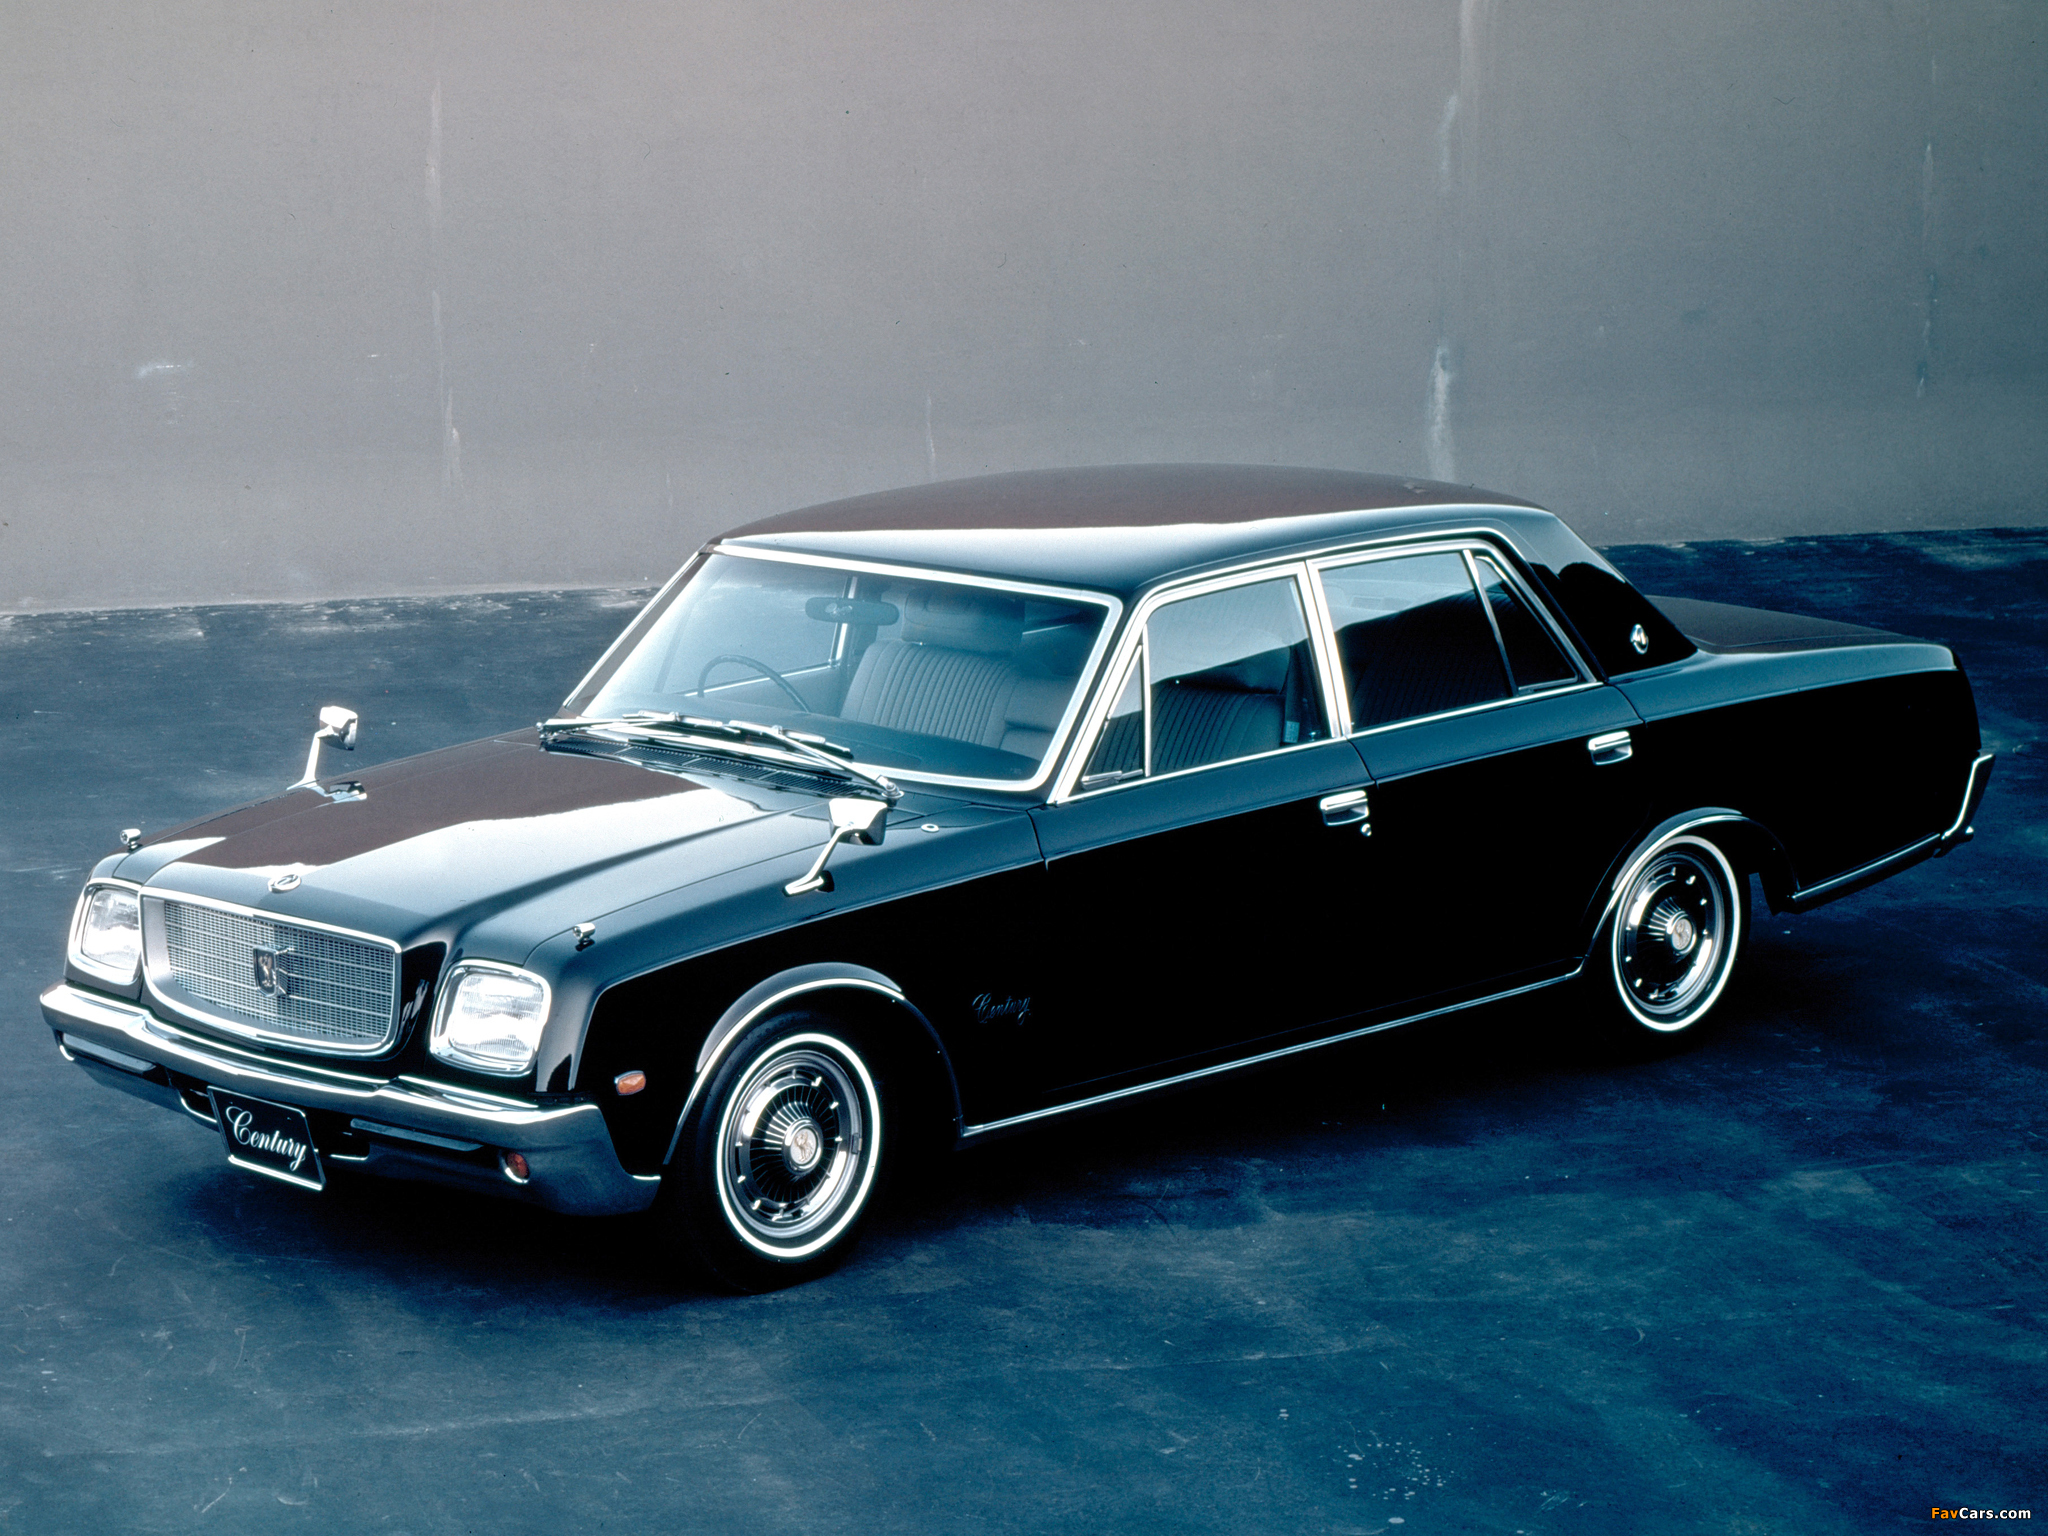 http://bestcarmag.com/sites/default/files/2553489toyota_century_1967_pictures_1.jpg